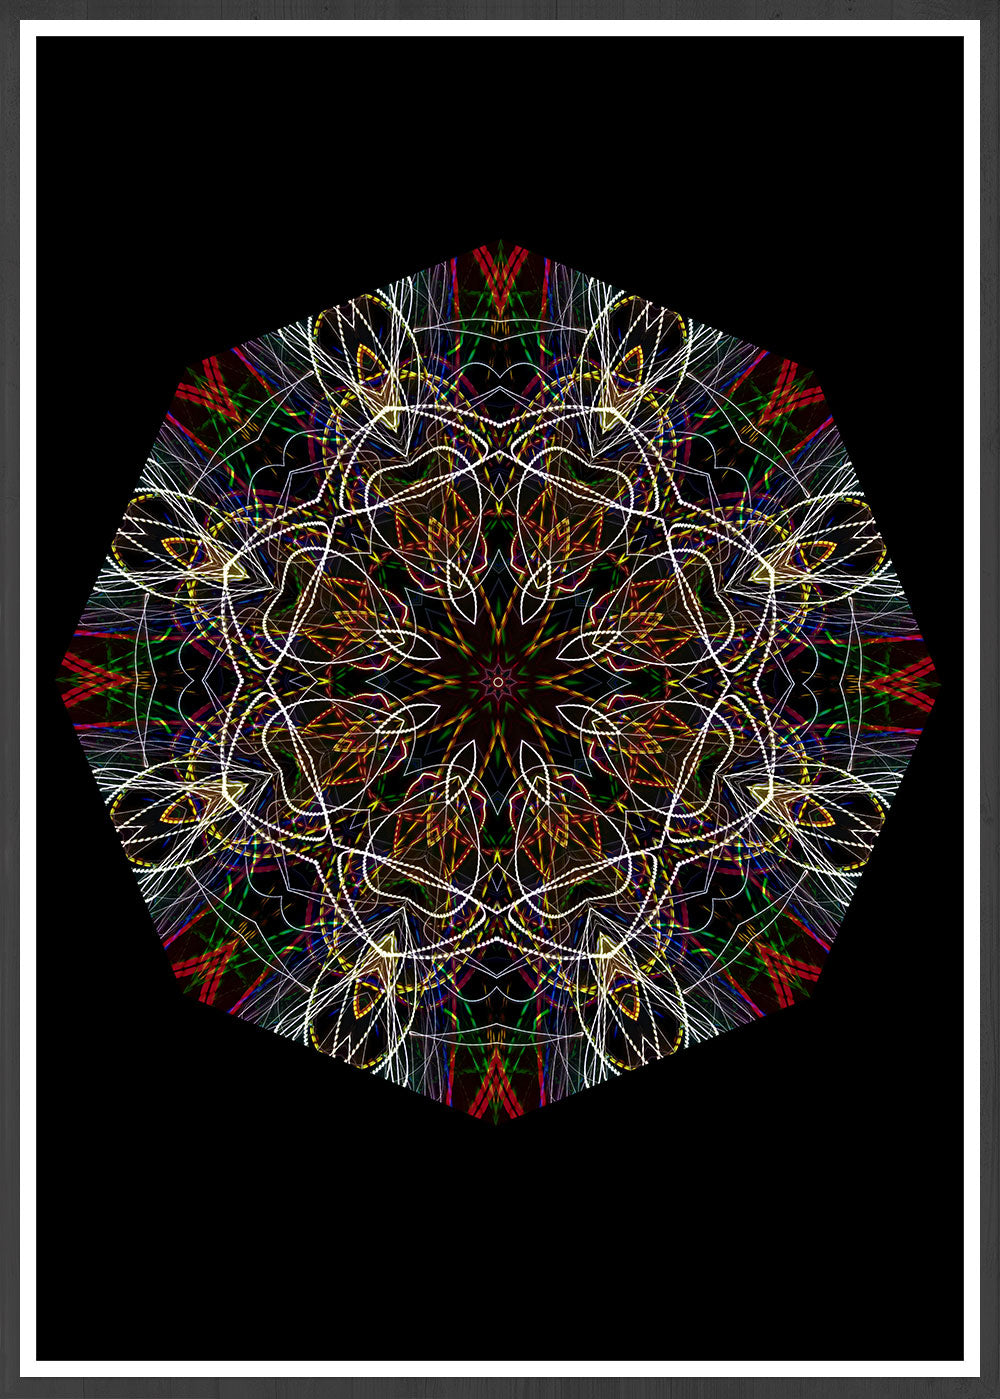 Endymion Symmetry Art Print in a frame